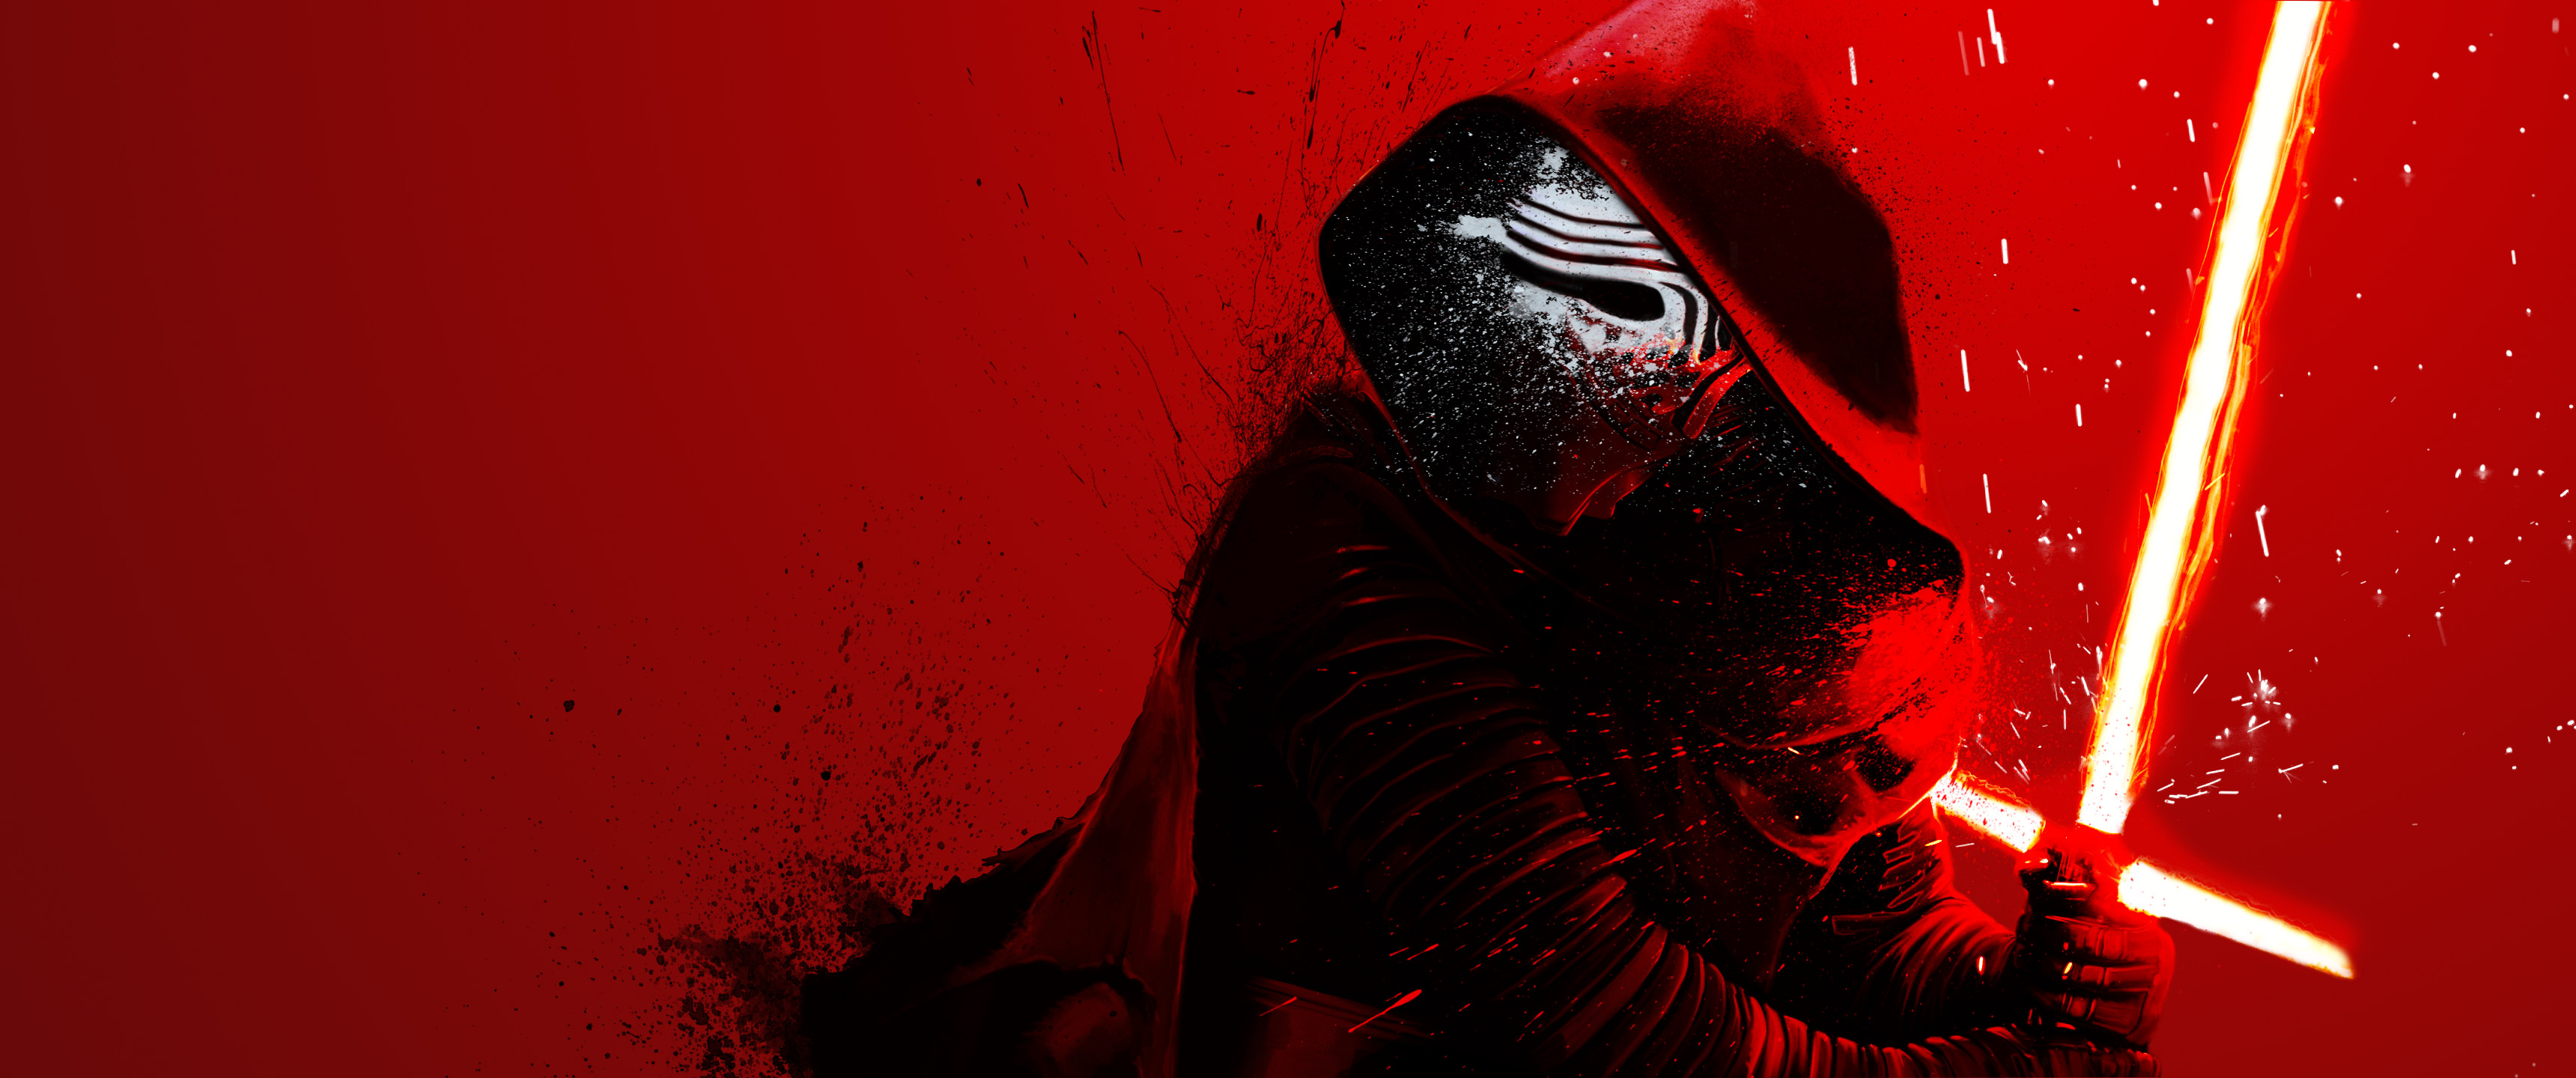 First Order 31 Star Wars Wallpapers